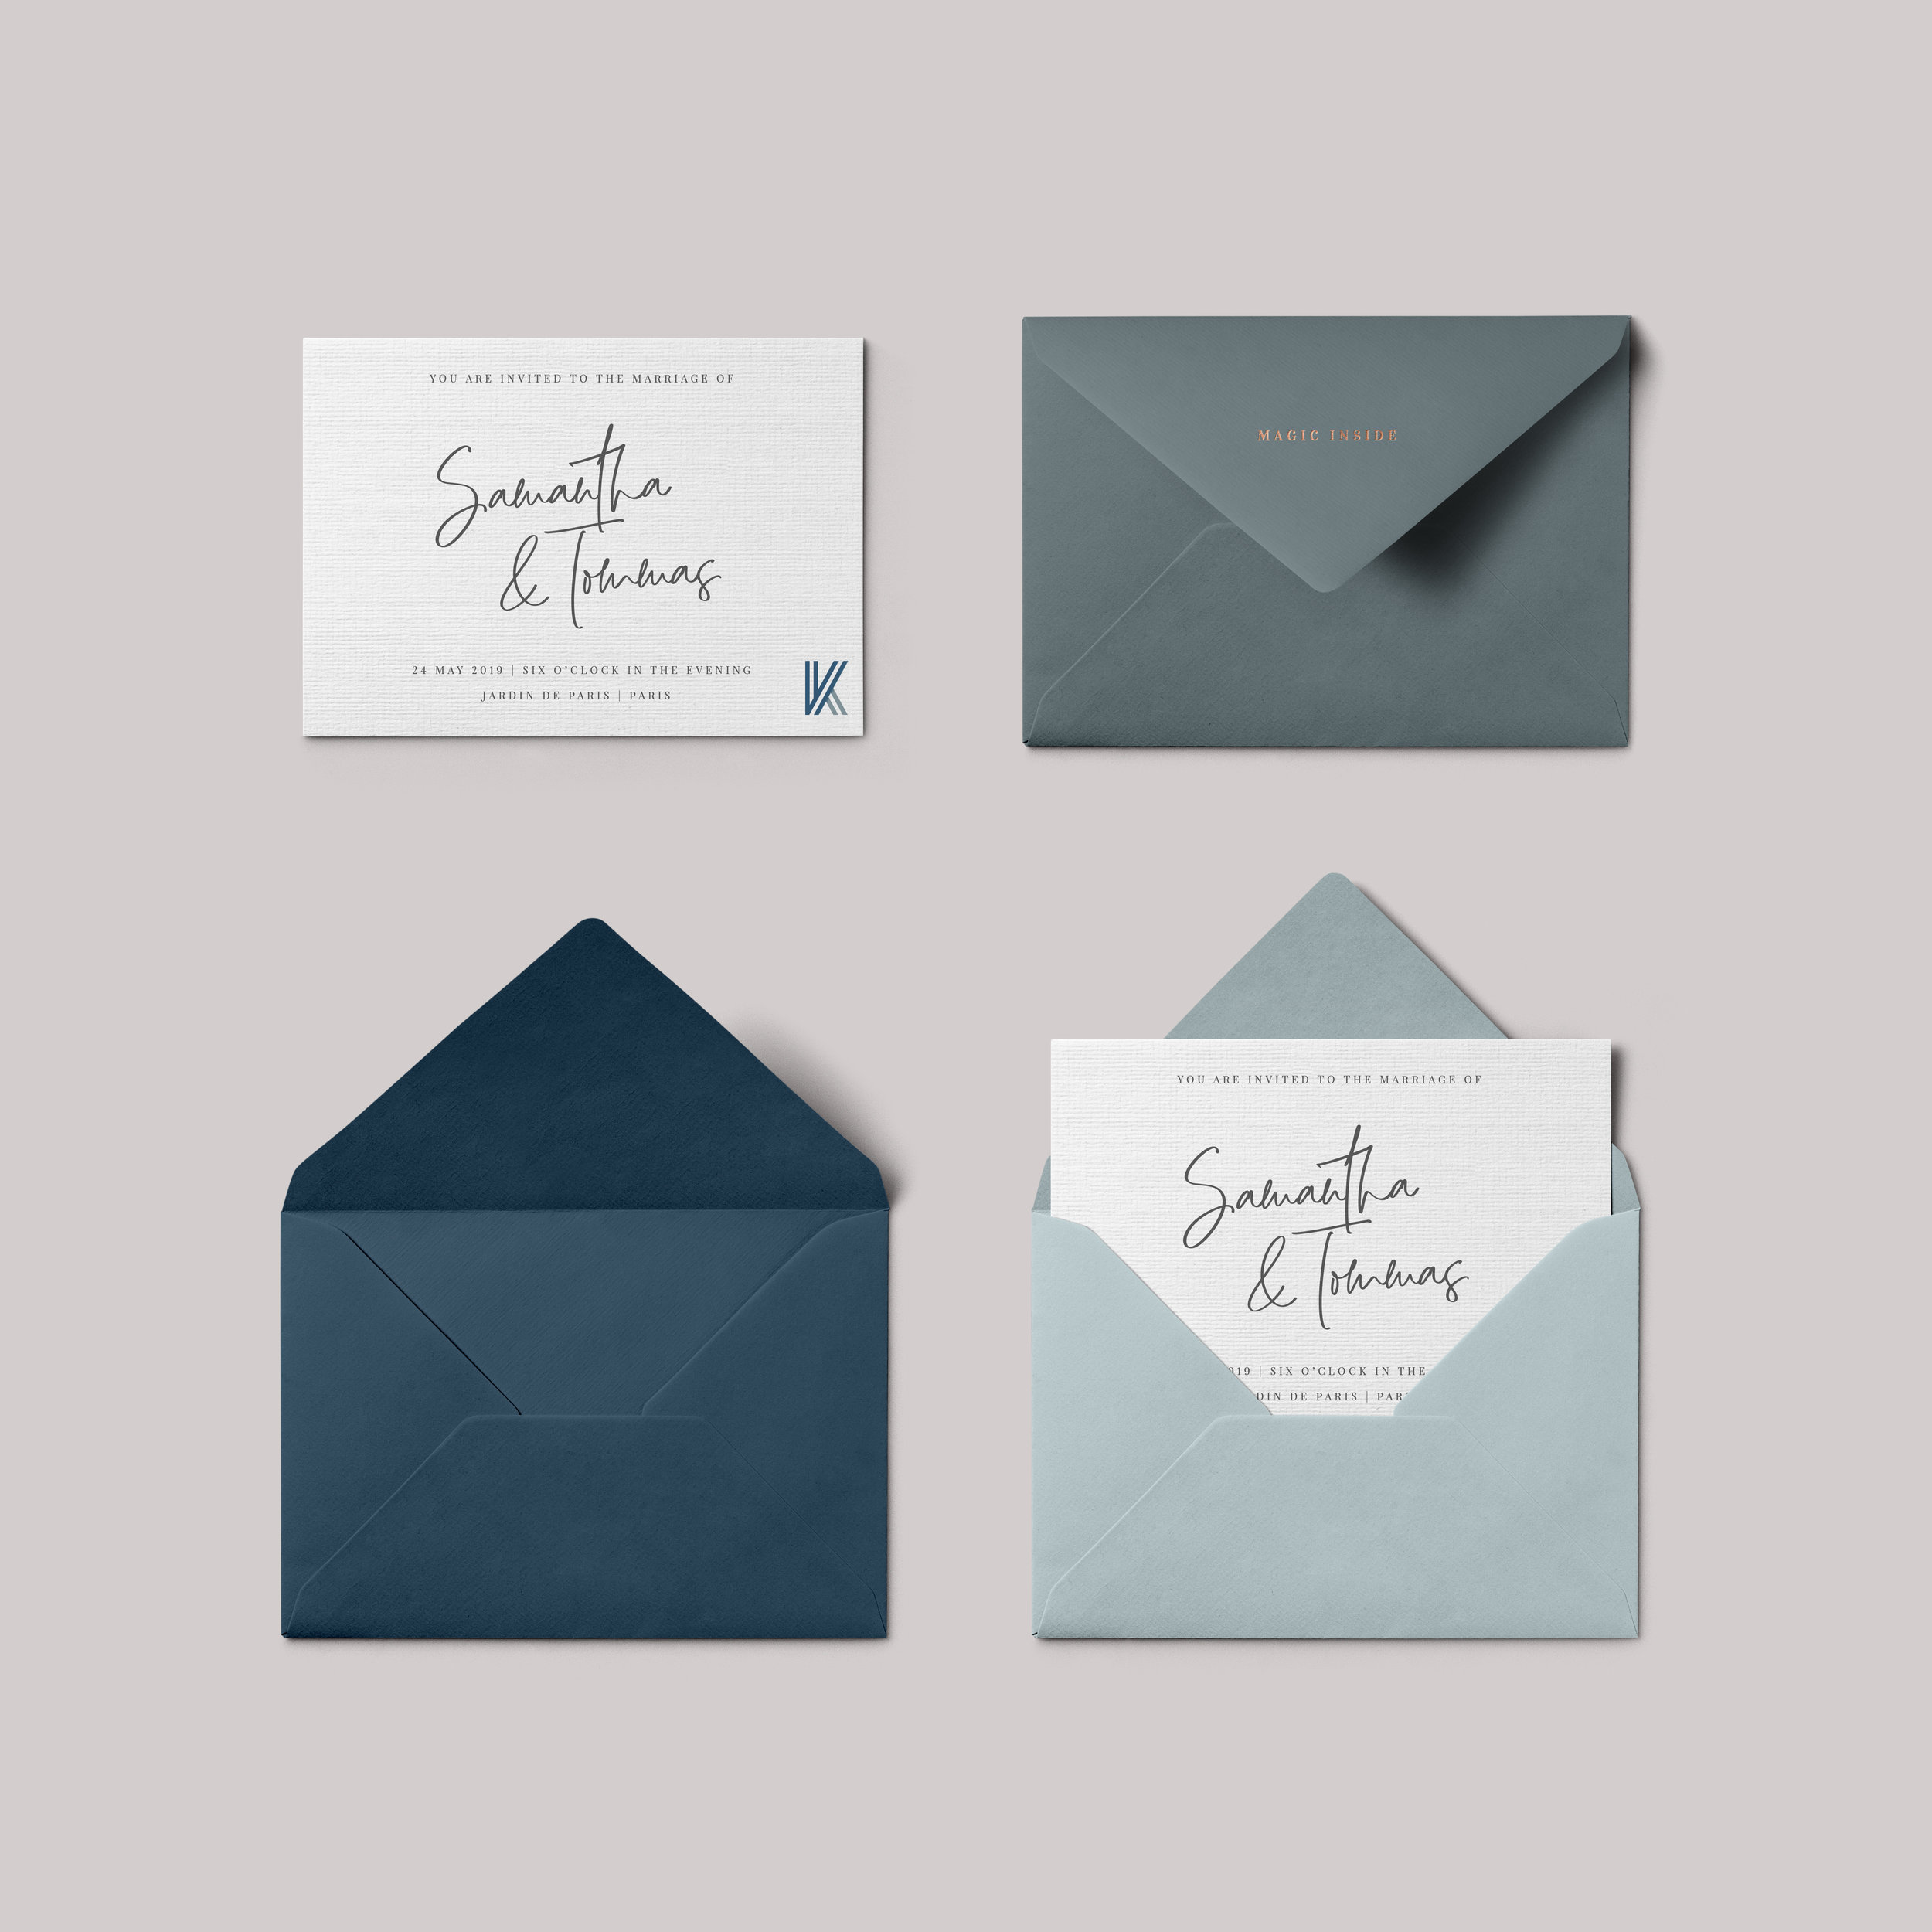 Stylish Envelopes - GRAPHICDELIVERY-KAYNA.jpg